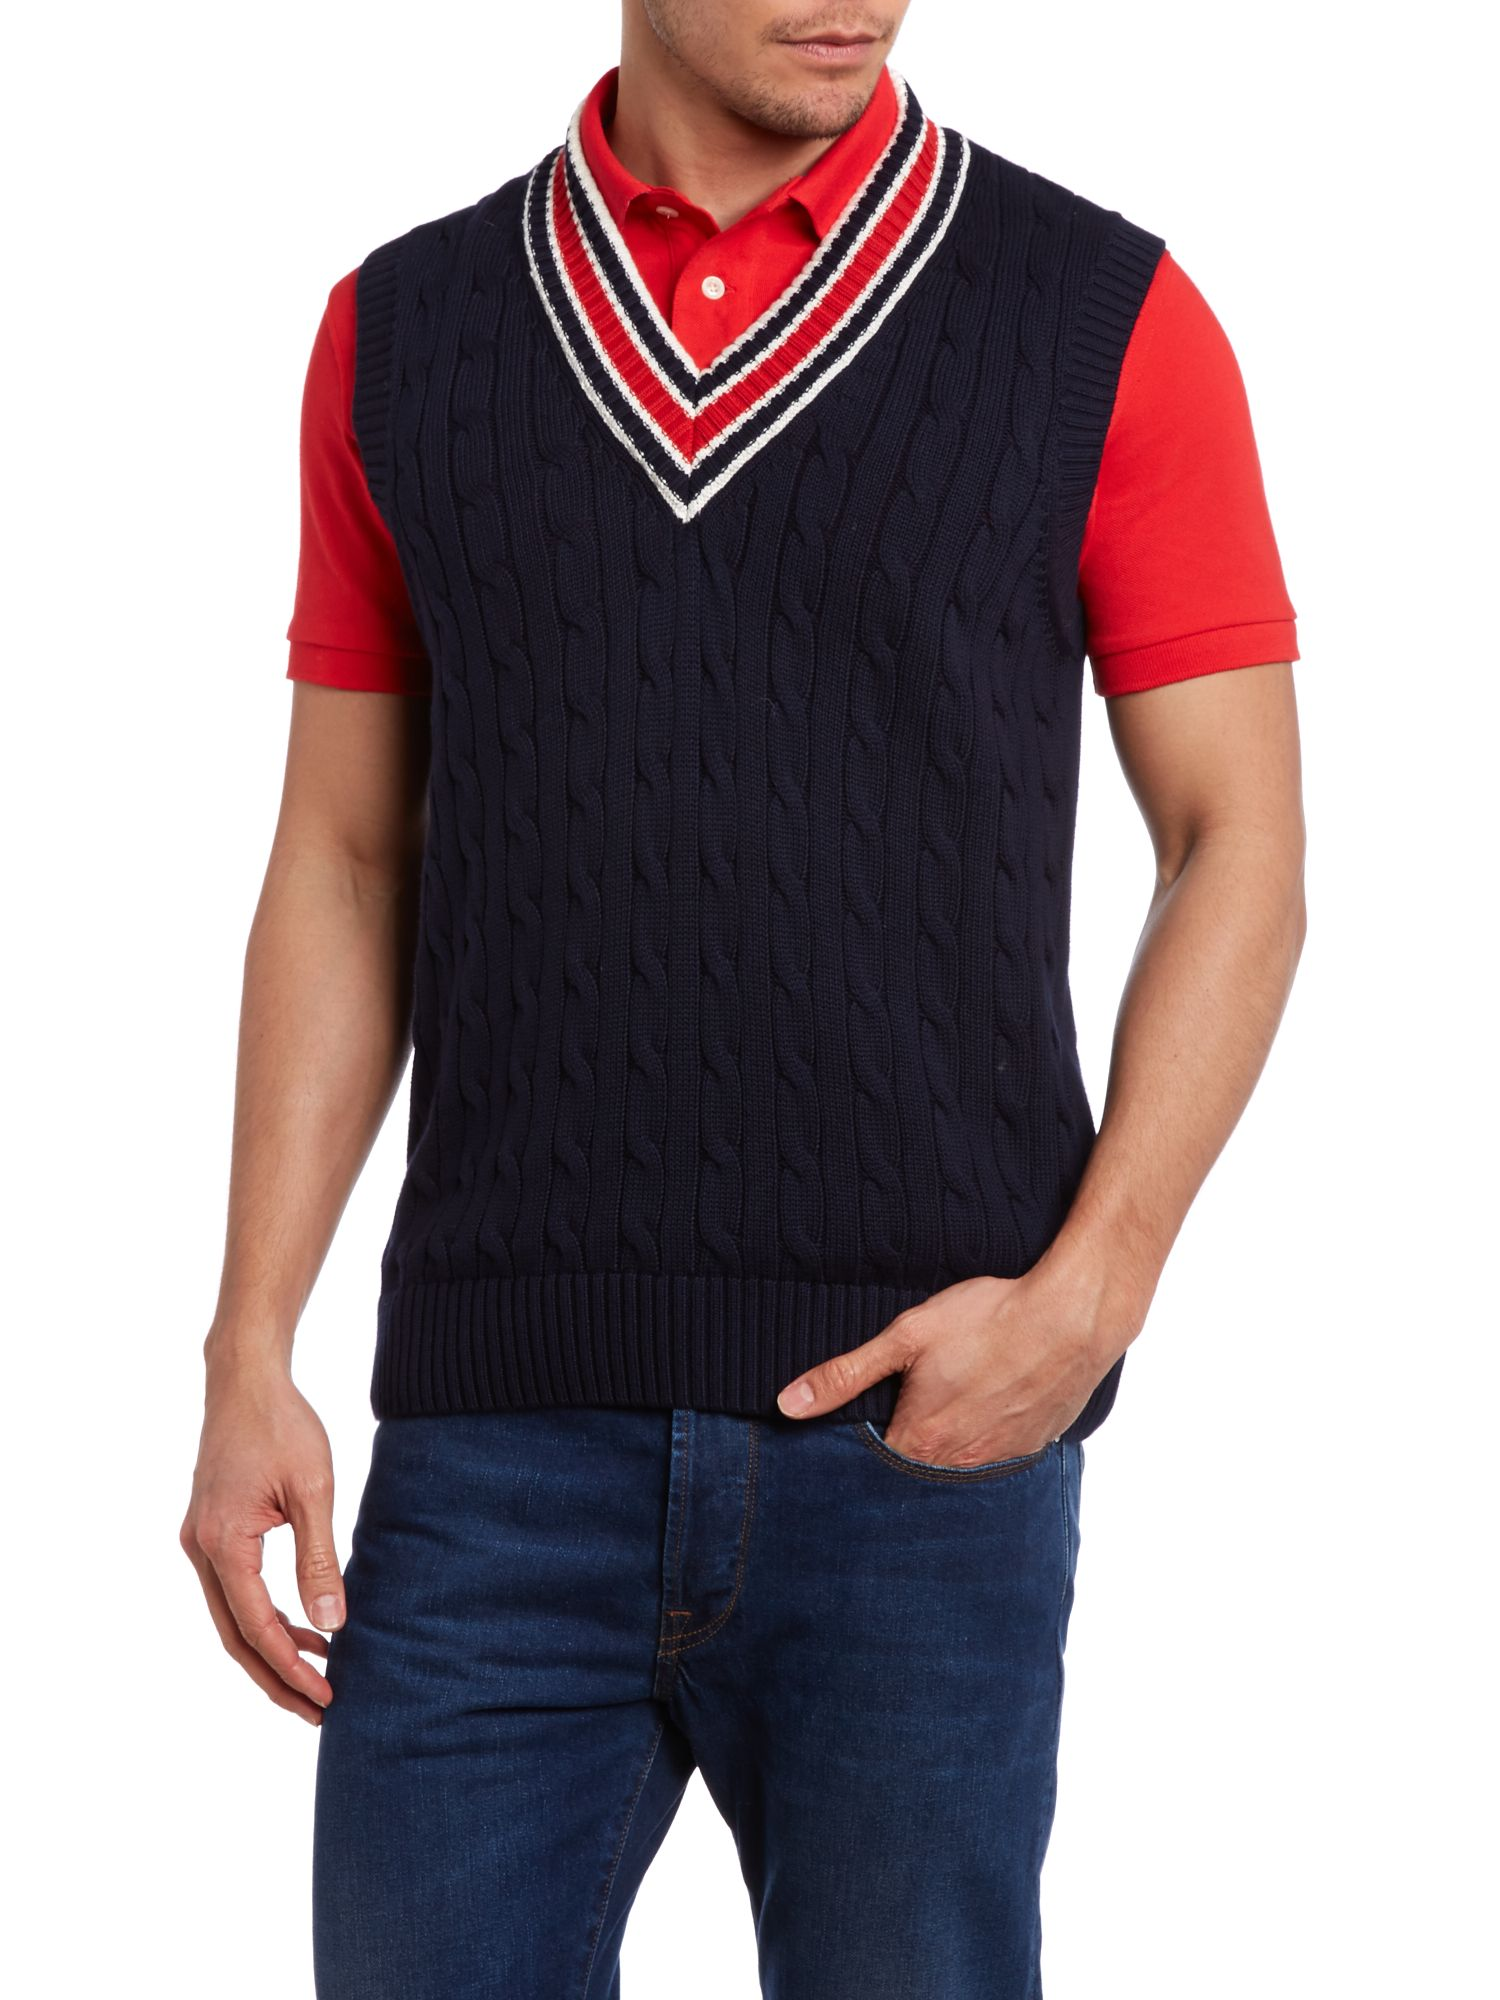 Chunky cricket cable knit vest